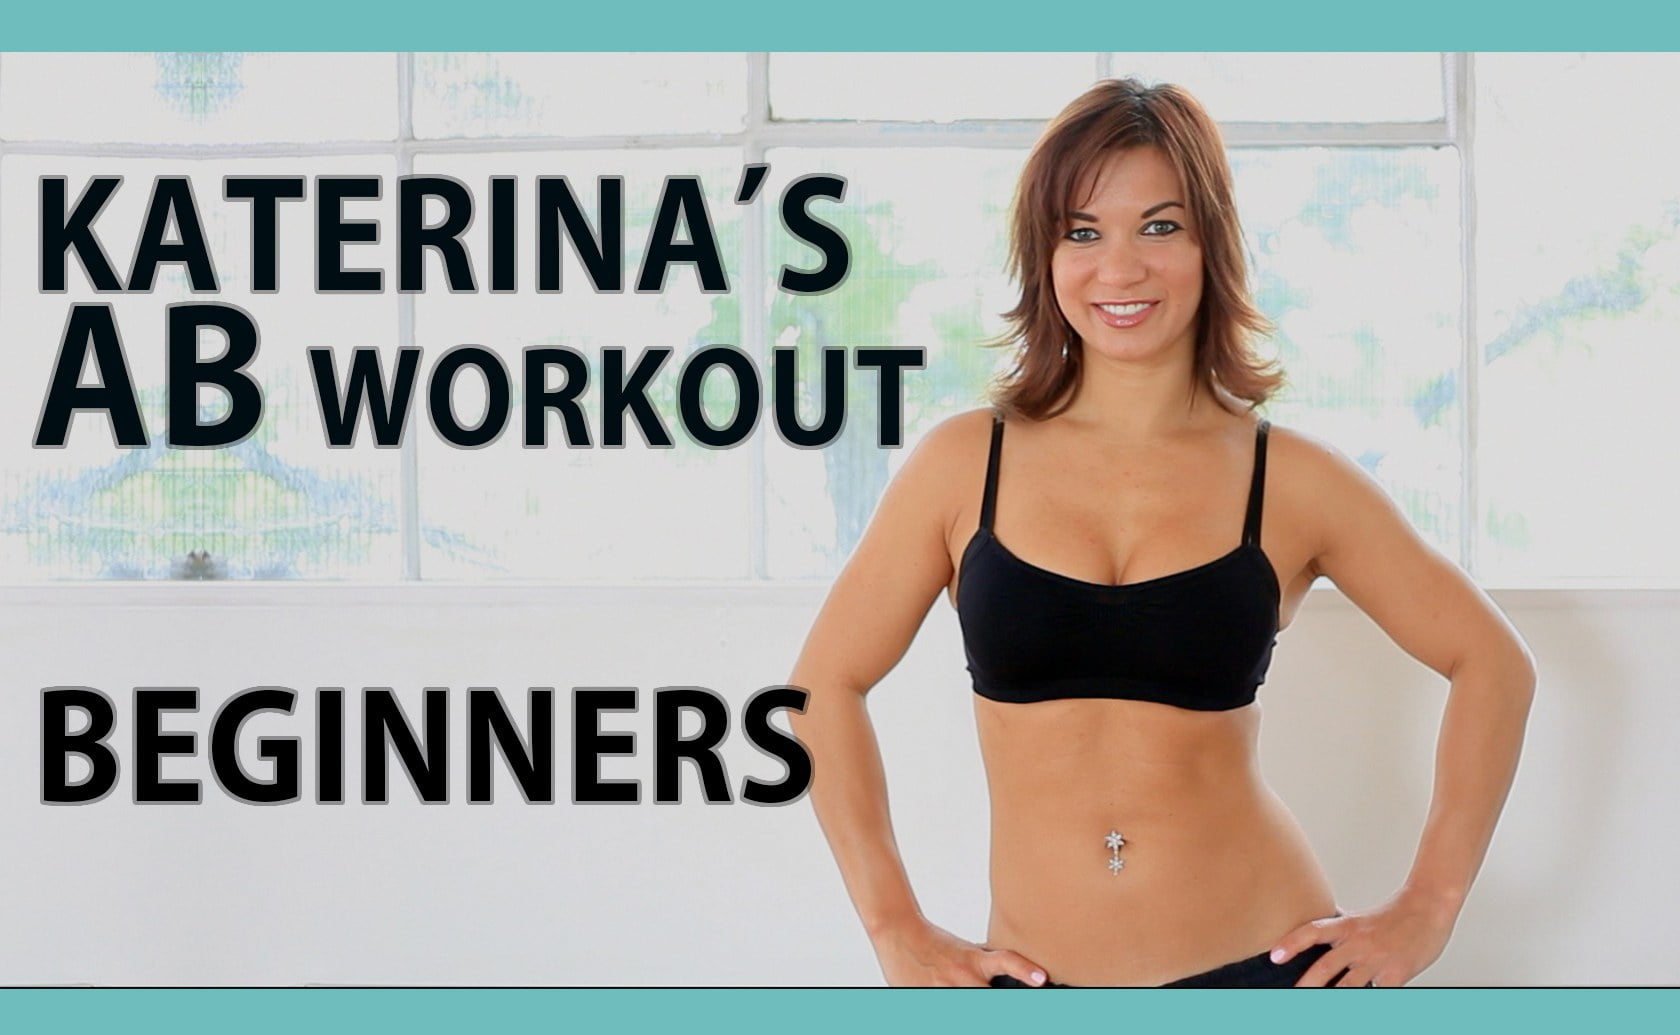 Tone, Sculpt and Define – The Ab Workout for Beginners